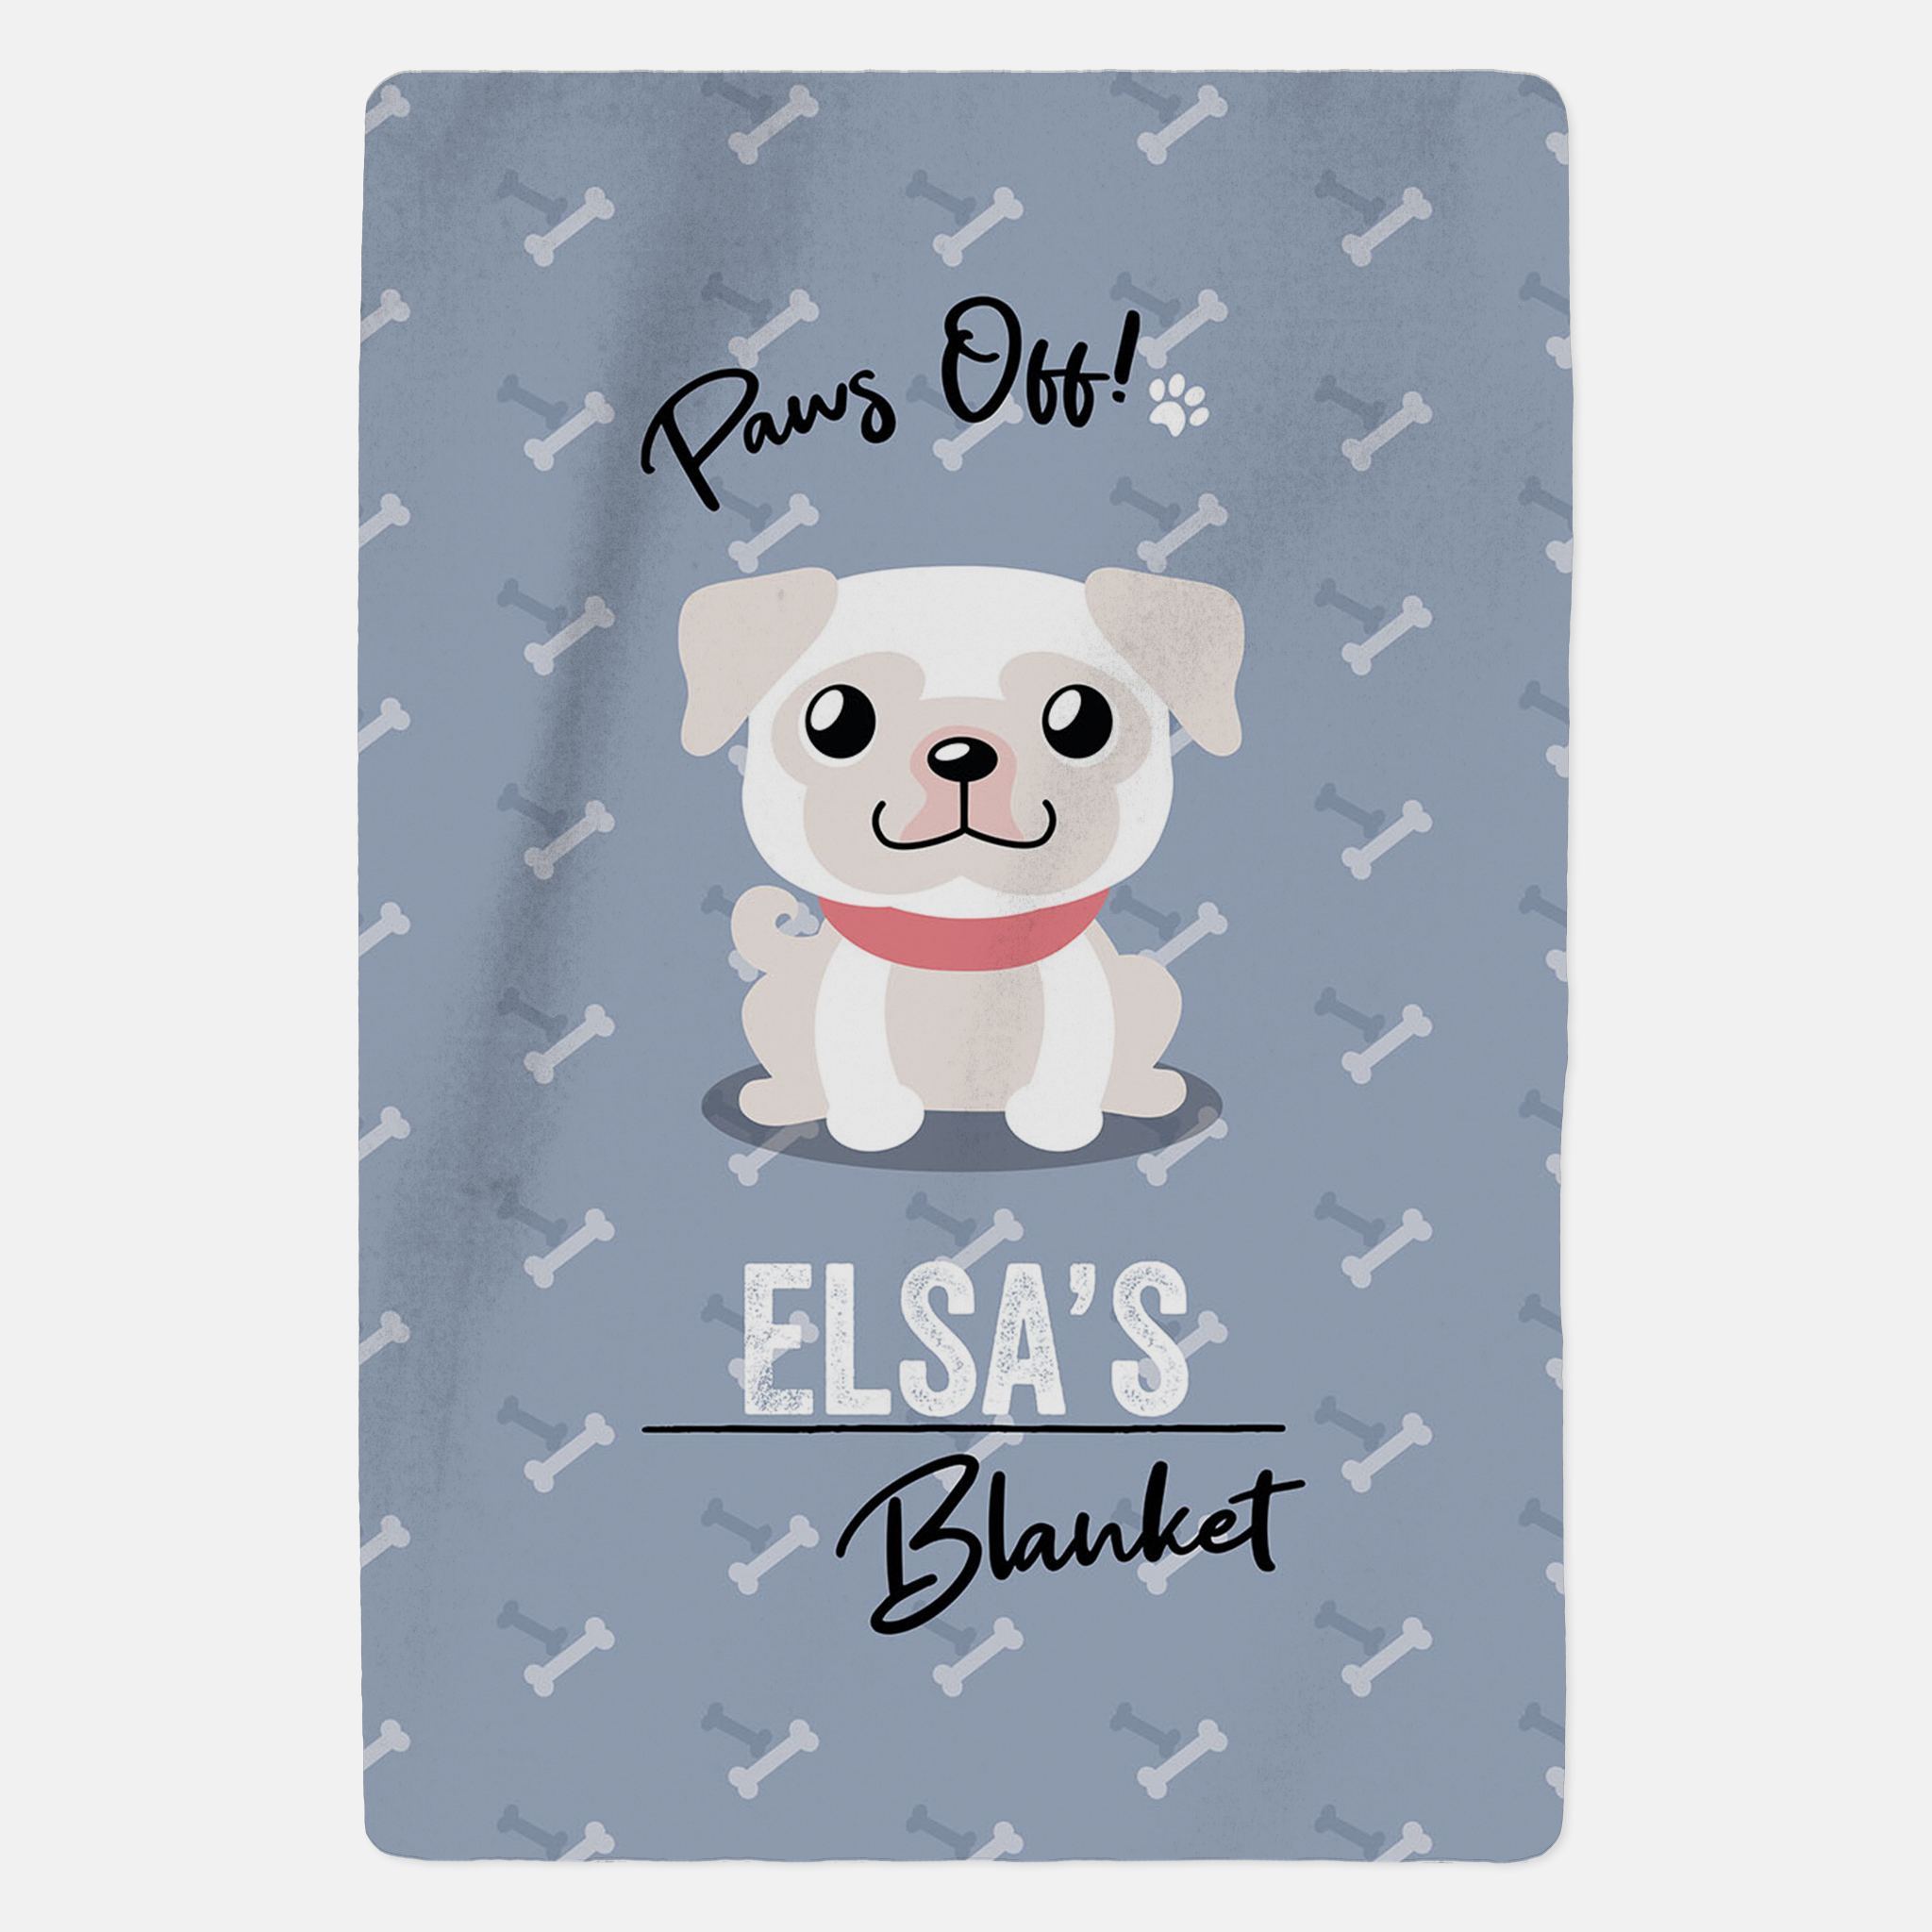 Personalised White Pug Blanket - Paws Off